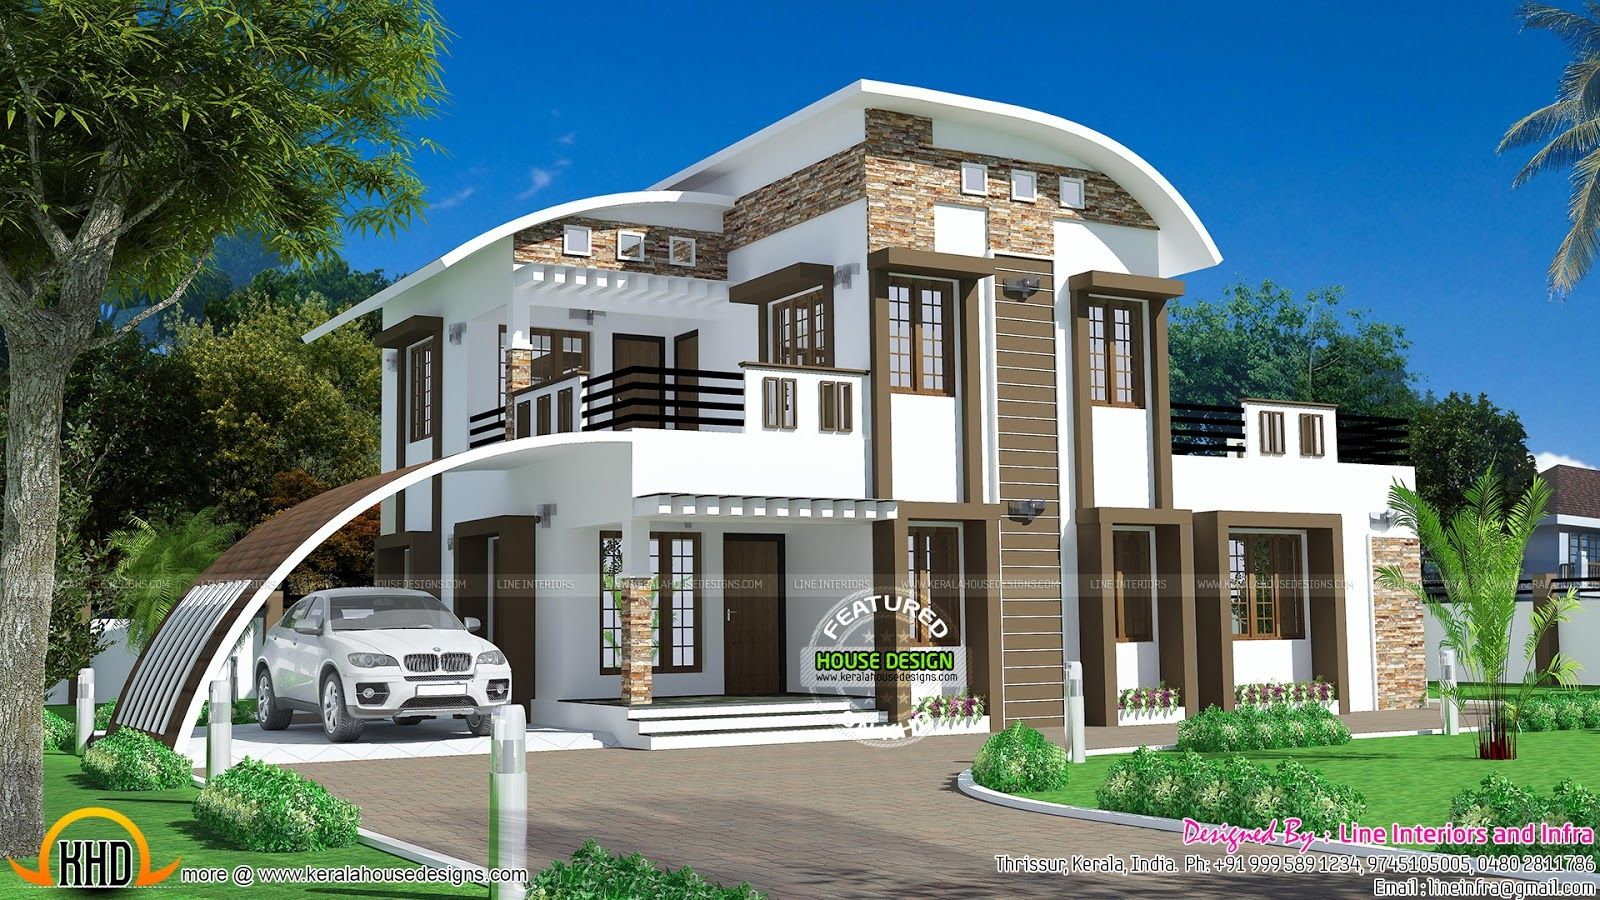 Round Roof House Designs House Of Samples Modern Round Houses Inside Round House Plans Impressive Kerala House Design Double Storey House Unique House Design